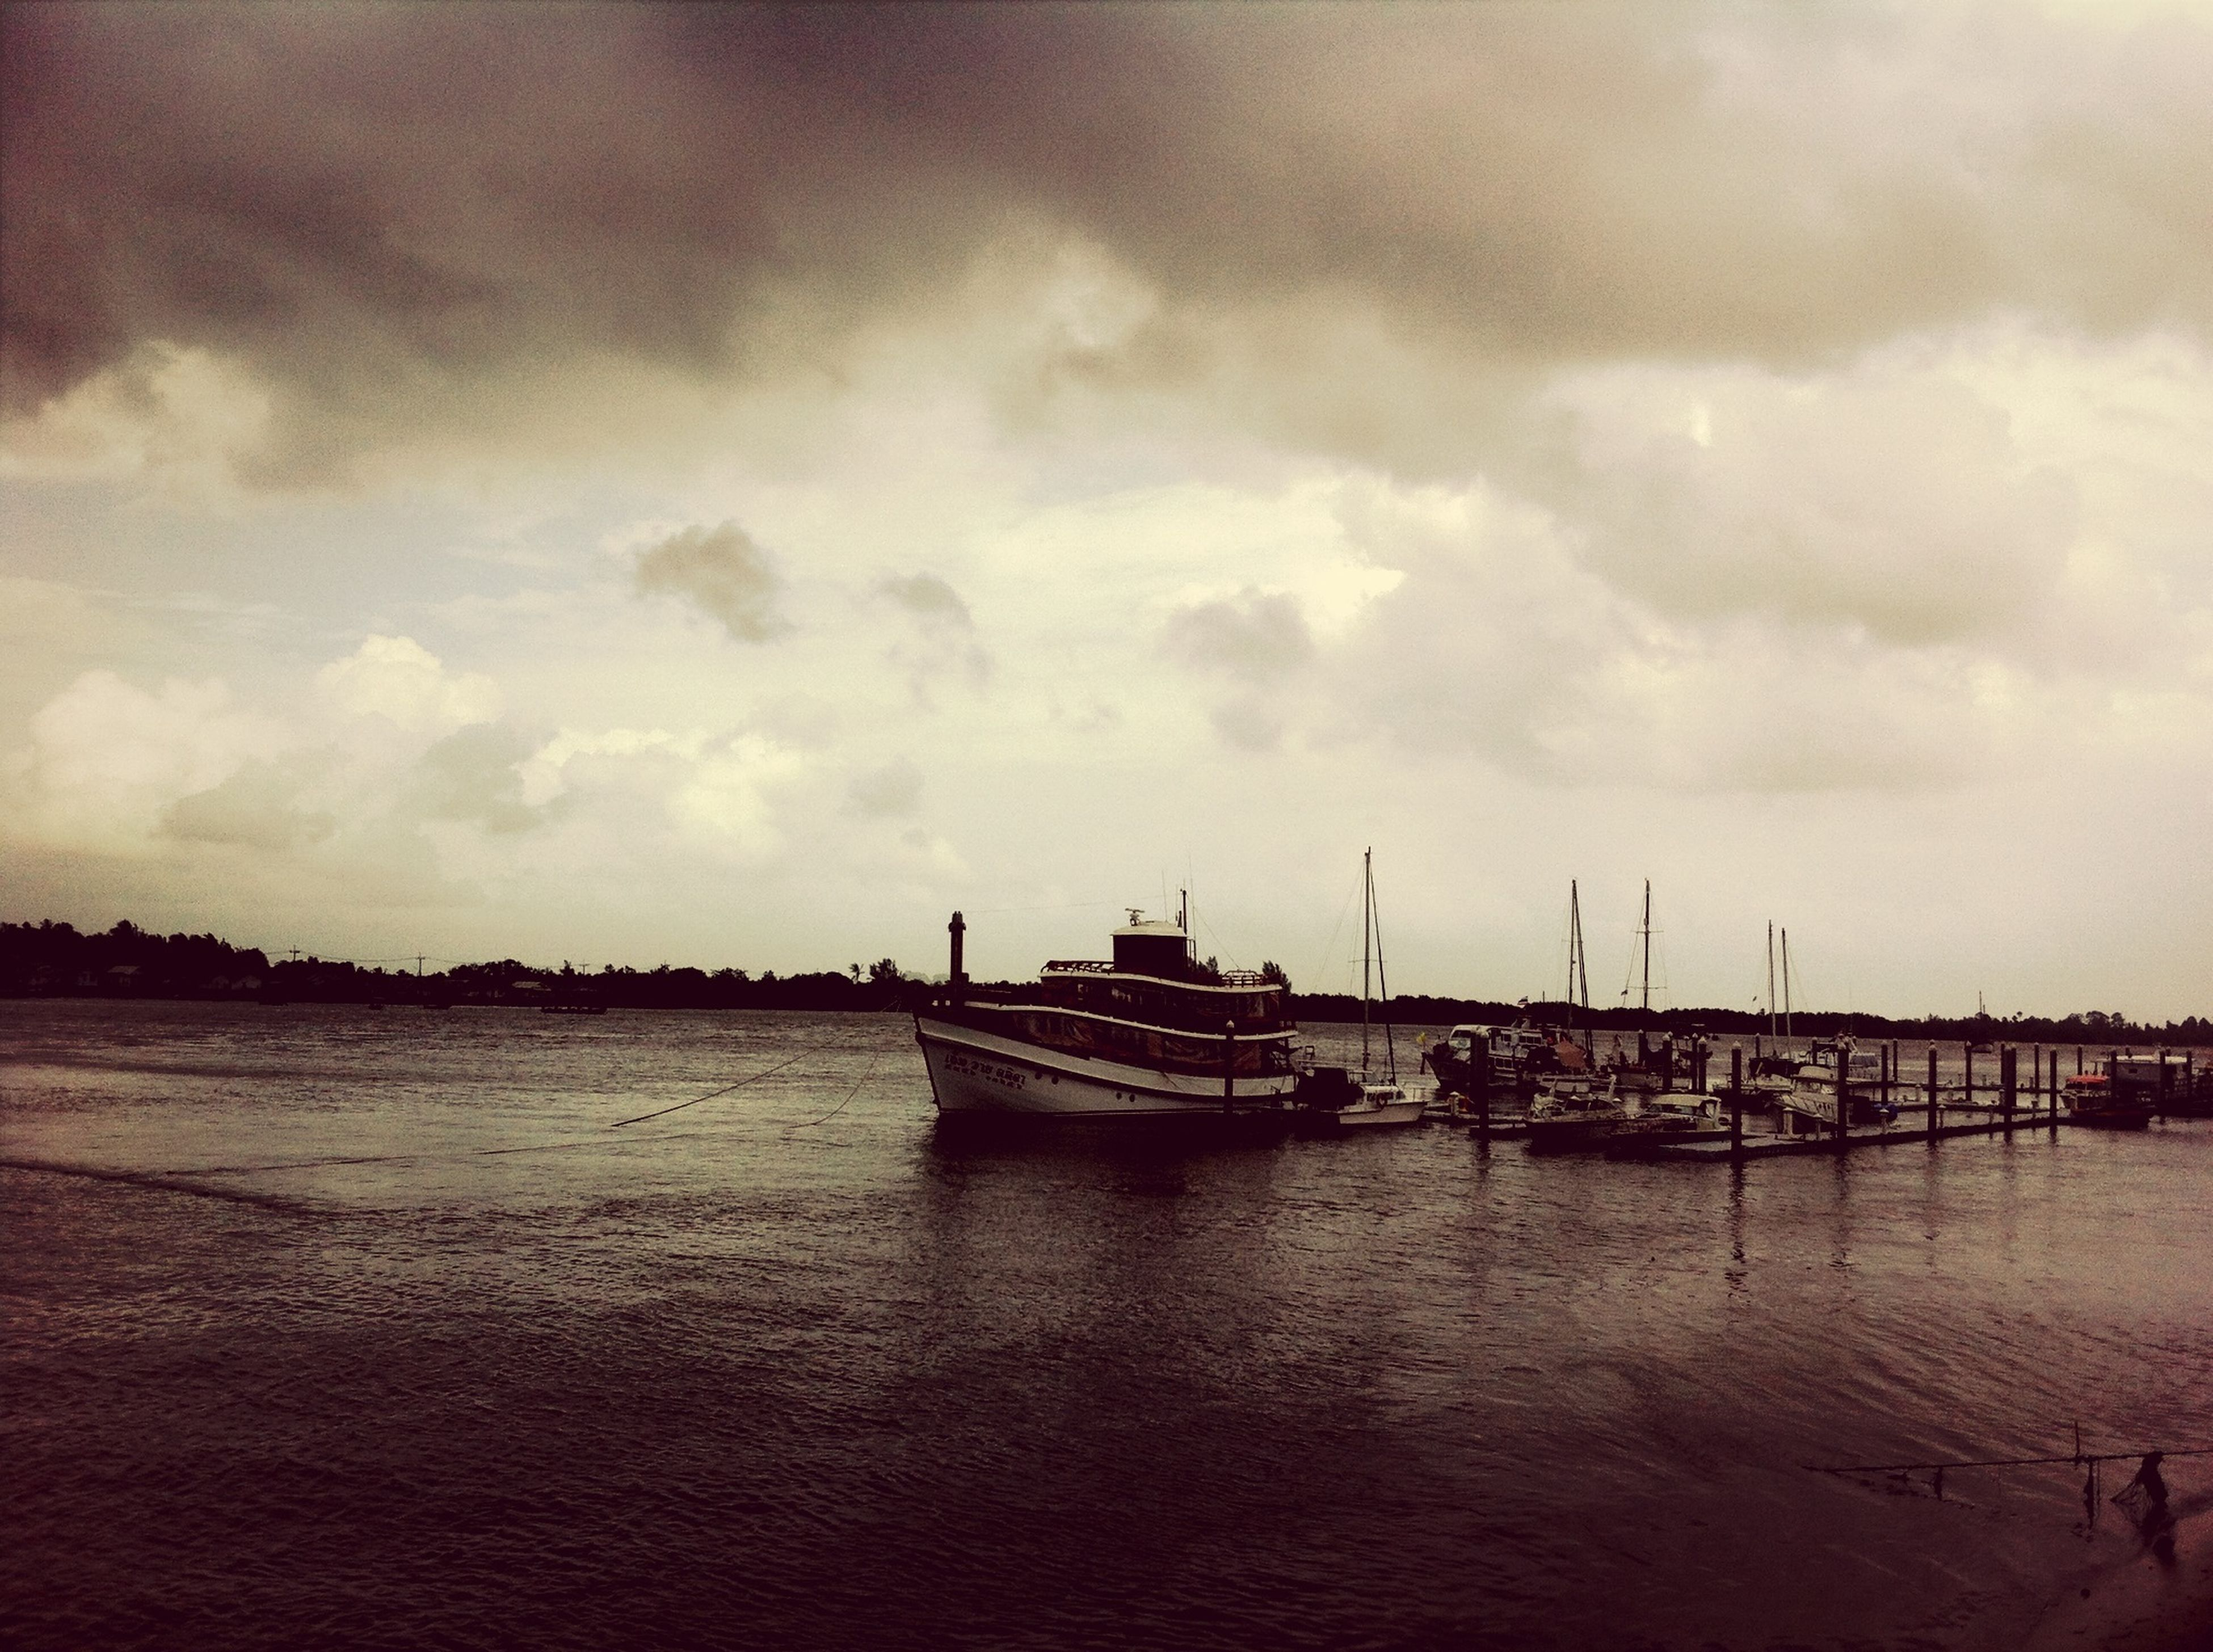 nautical vessel, transportation, mode of transport, water, boat, sky, moored, cloud - sky, sea, waterfront, cloudy, harbor, mast, nature, cloud, tranquility, overcast, tranquil scene, sailboat, ship